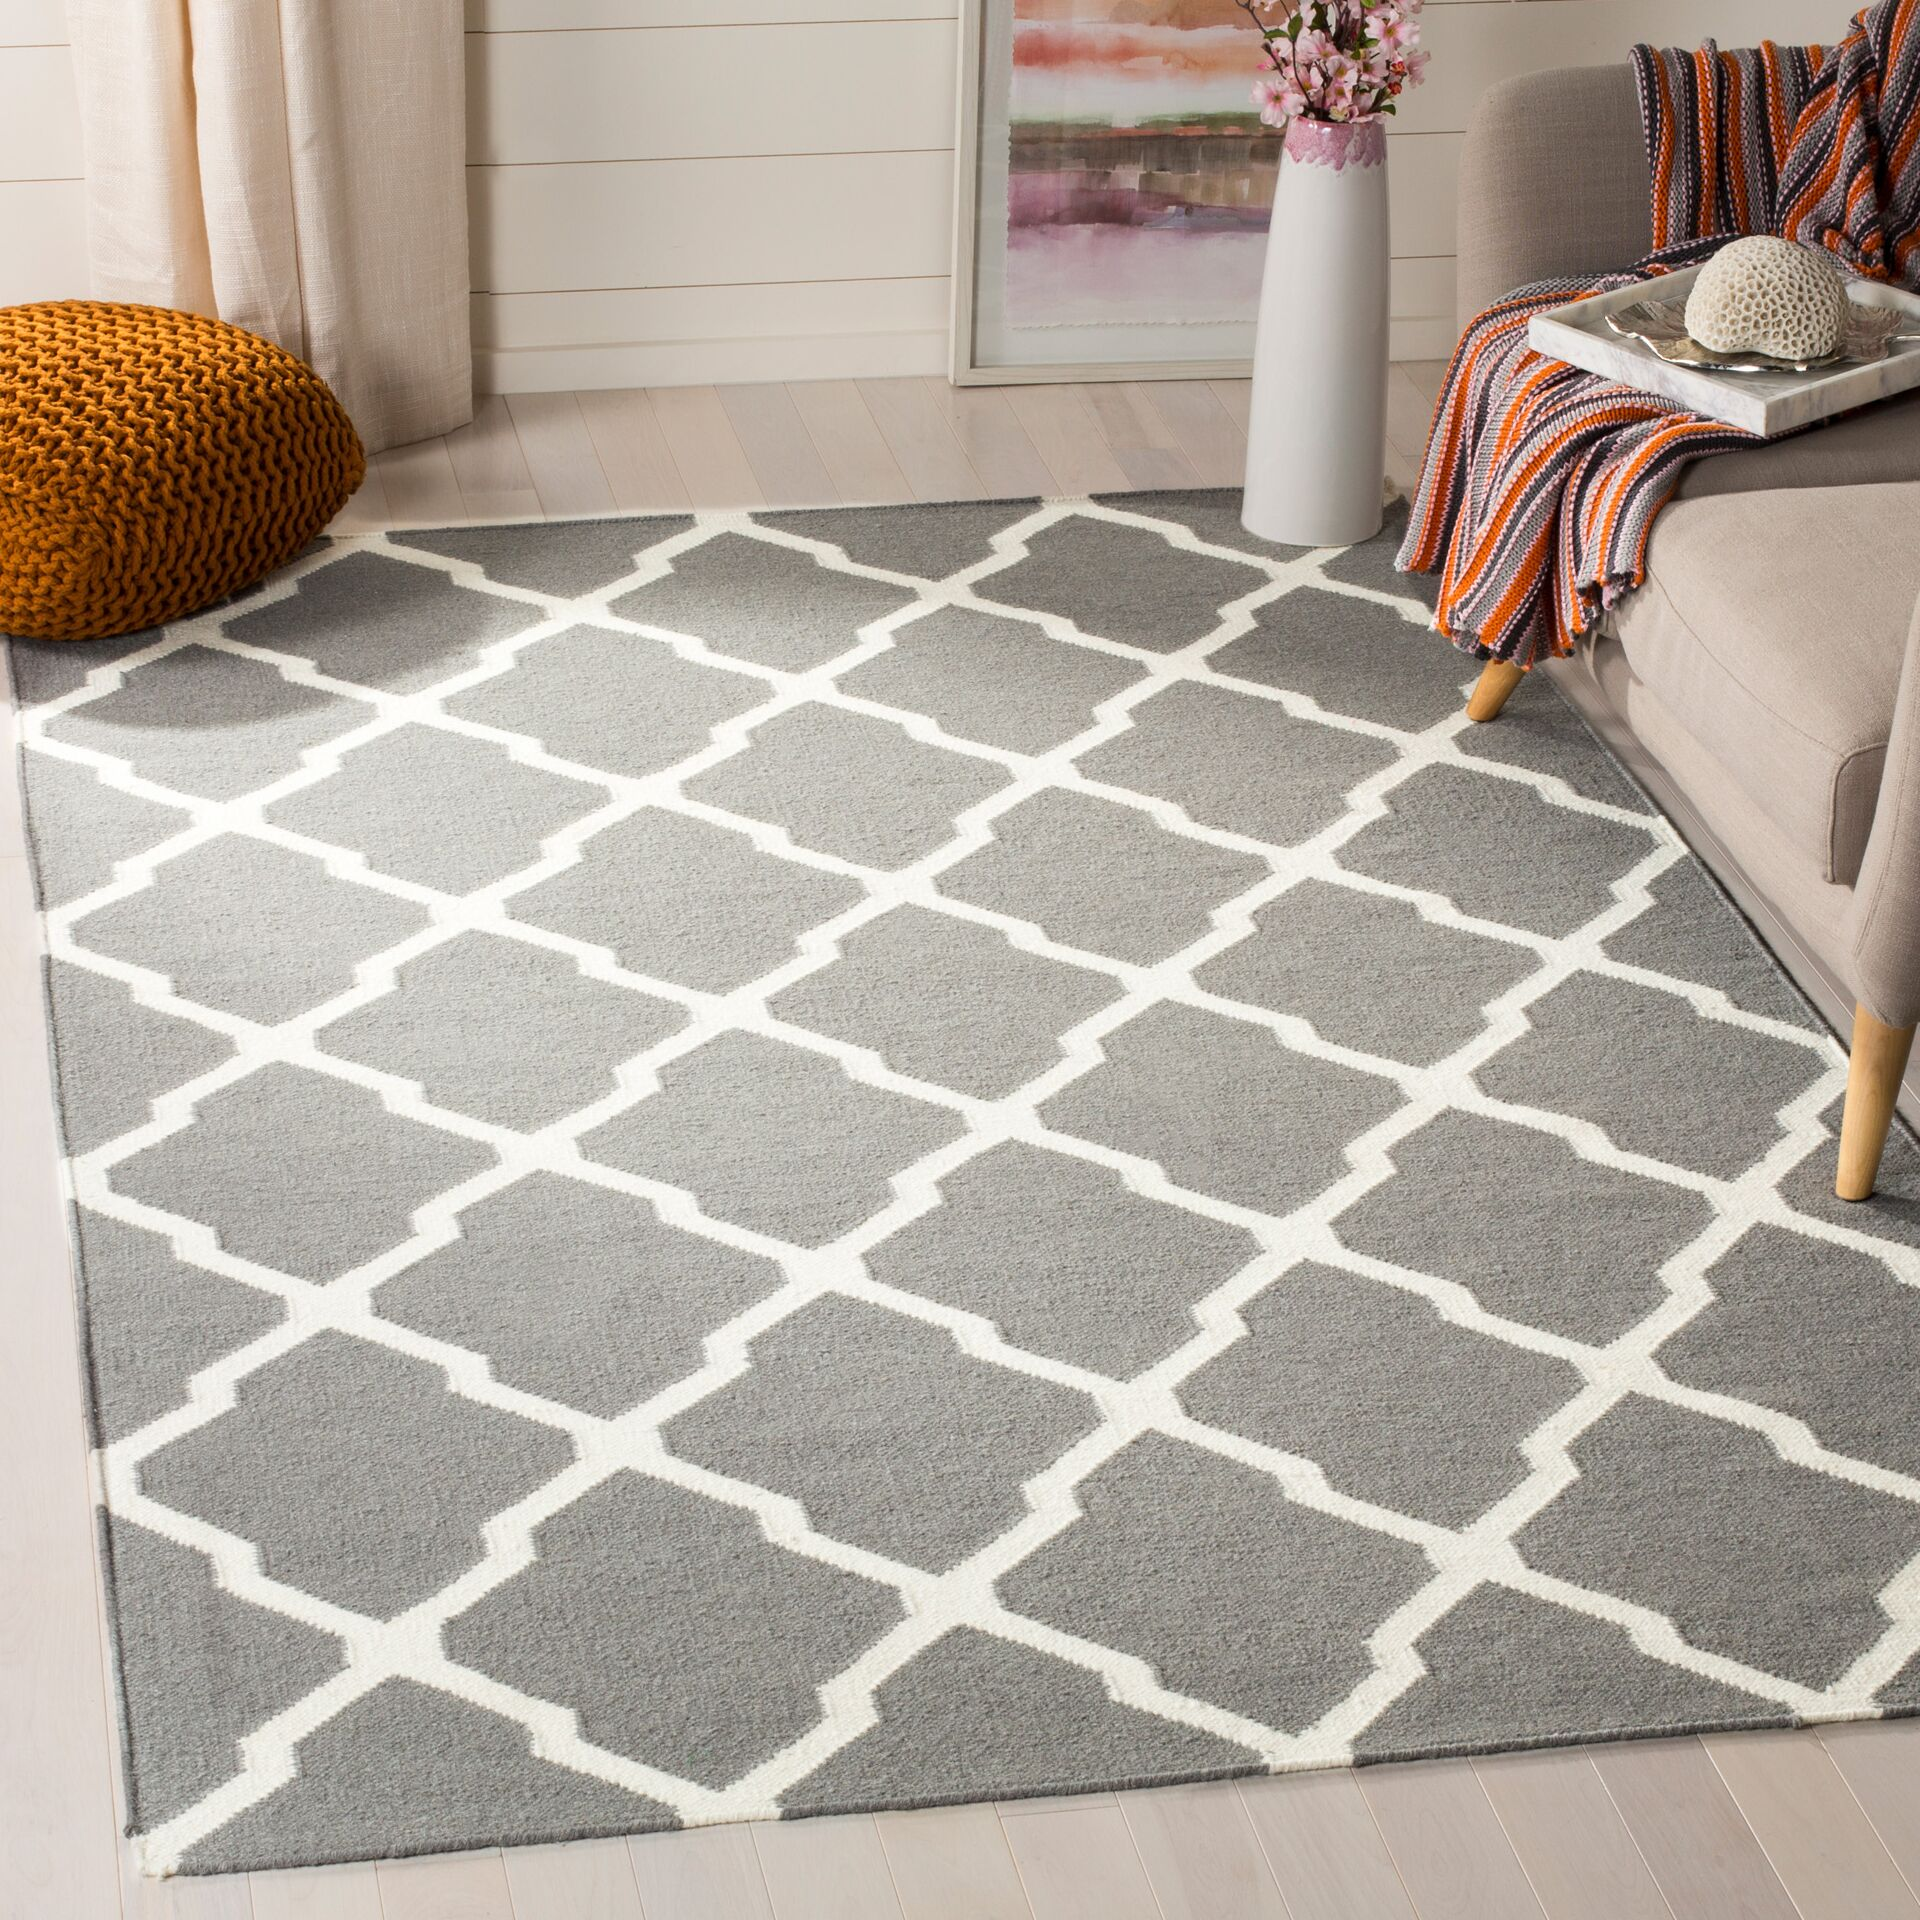 Dhurries Wool Gray/Ivory Area Rug Rug Size: Rectangle 4' x 6'